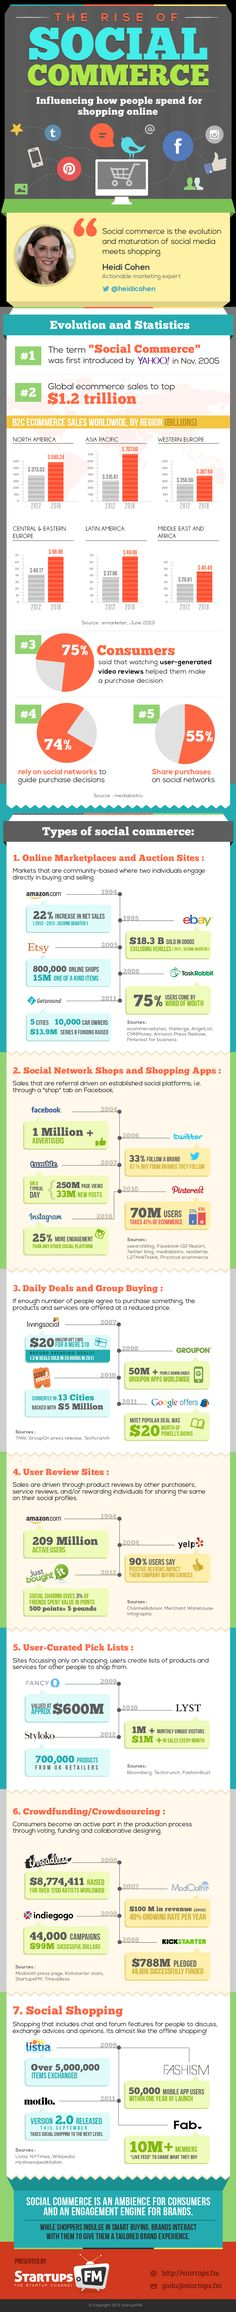 Social Commerce is an ambience for consumers to drive in better engagement. While shoppers indulge in smart buying, brands interact with them to give